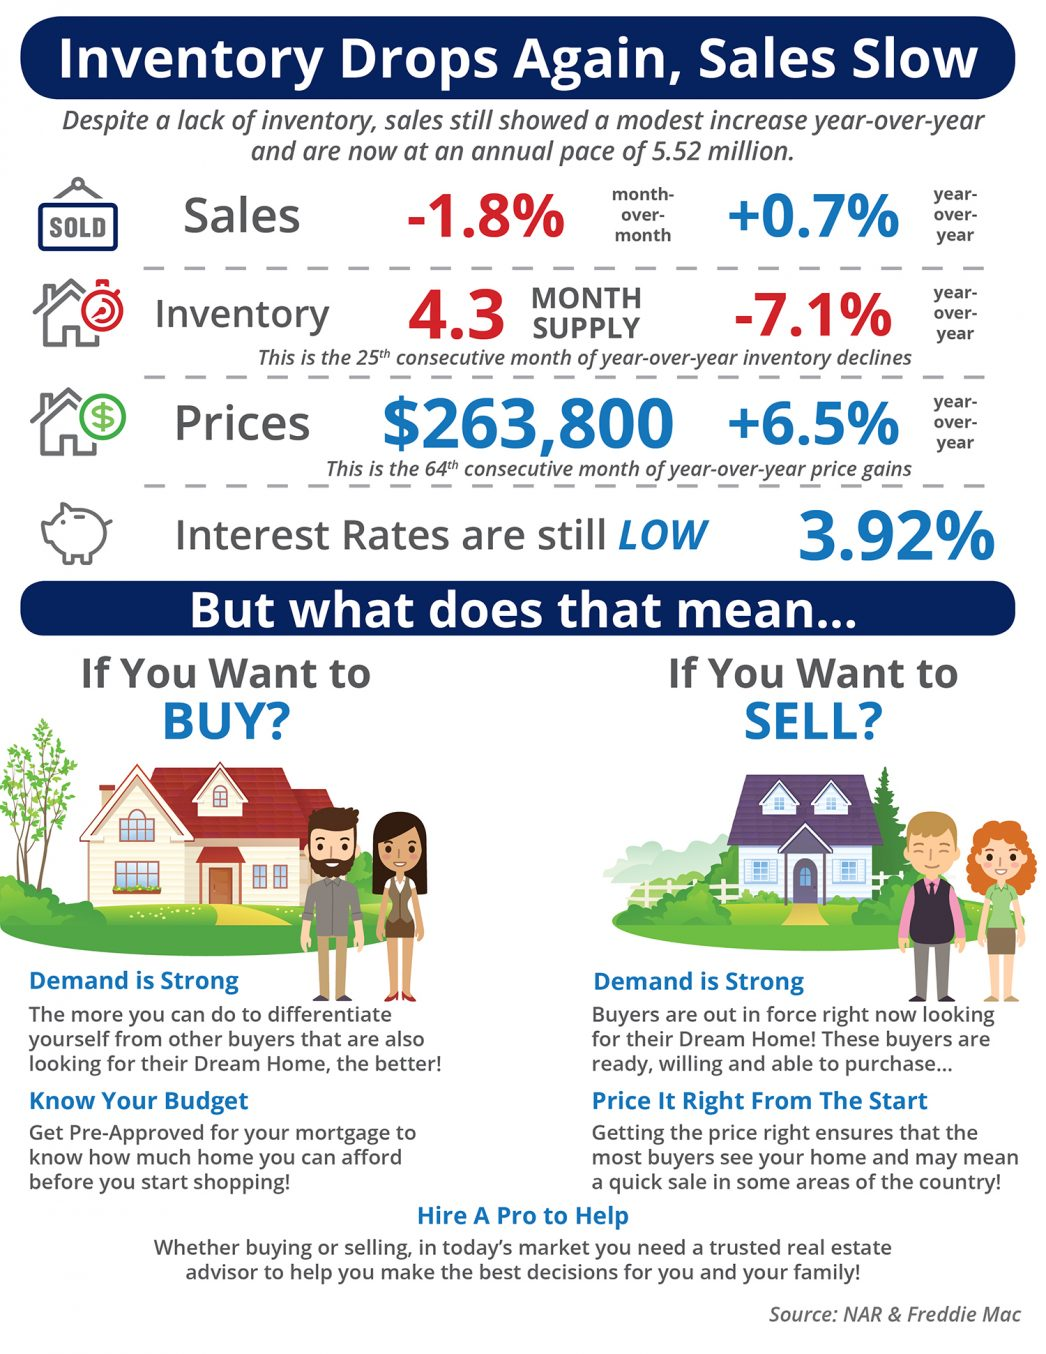 Inventory Drops Again, Sales Slow [INFOGRAPHIC] 20170728 EHS June Infographic Highlights: Existing Home Sales are now at an annual pace of 5.52 million. Inventory of existing homes for sale dropped to a 4.3-month supply, marking the 25th month in a row of declines. The median price of homes sold in June was $263,800. This is the 64th consecutive month of year-over-year price gains.